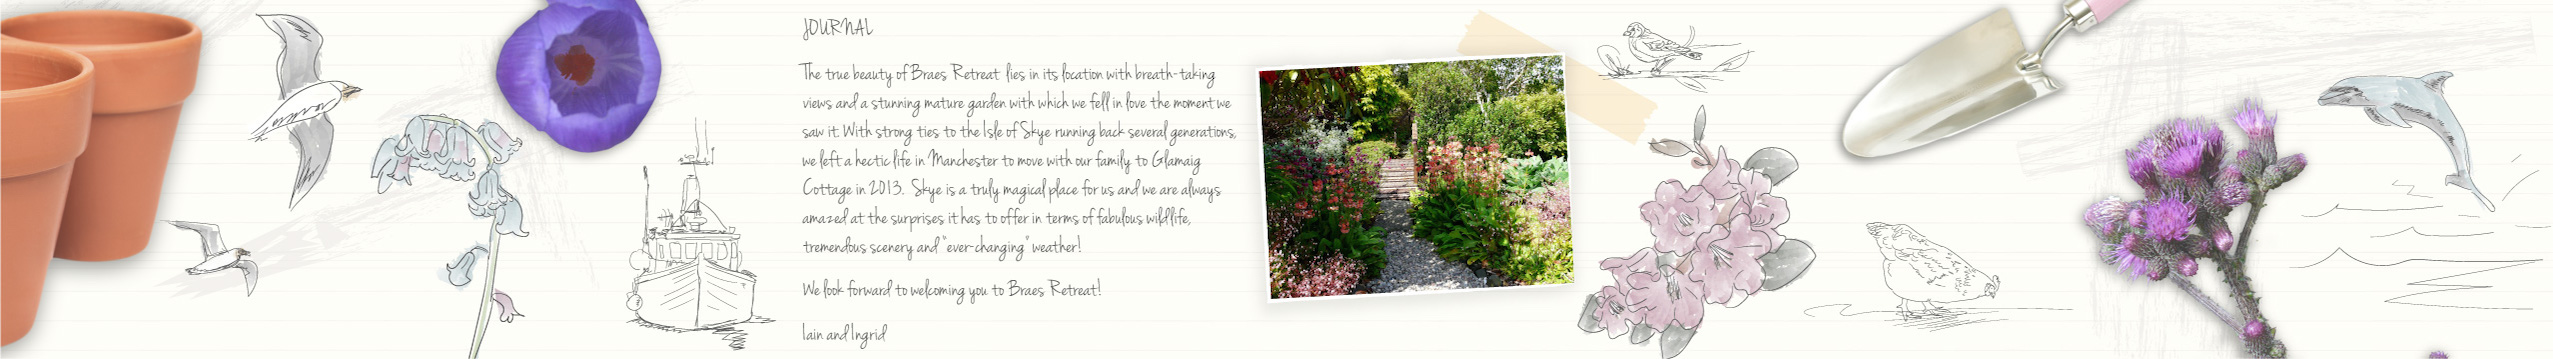 Braes-retreat-journal-page